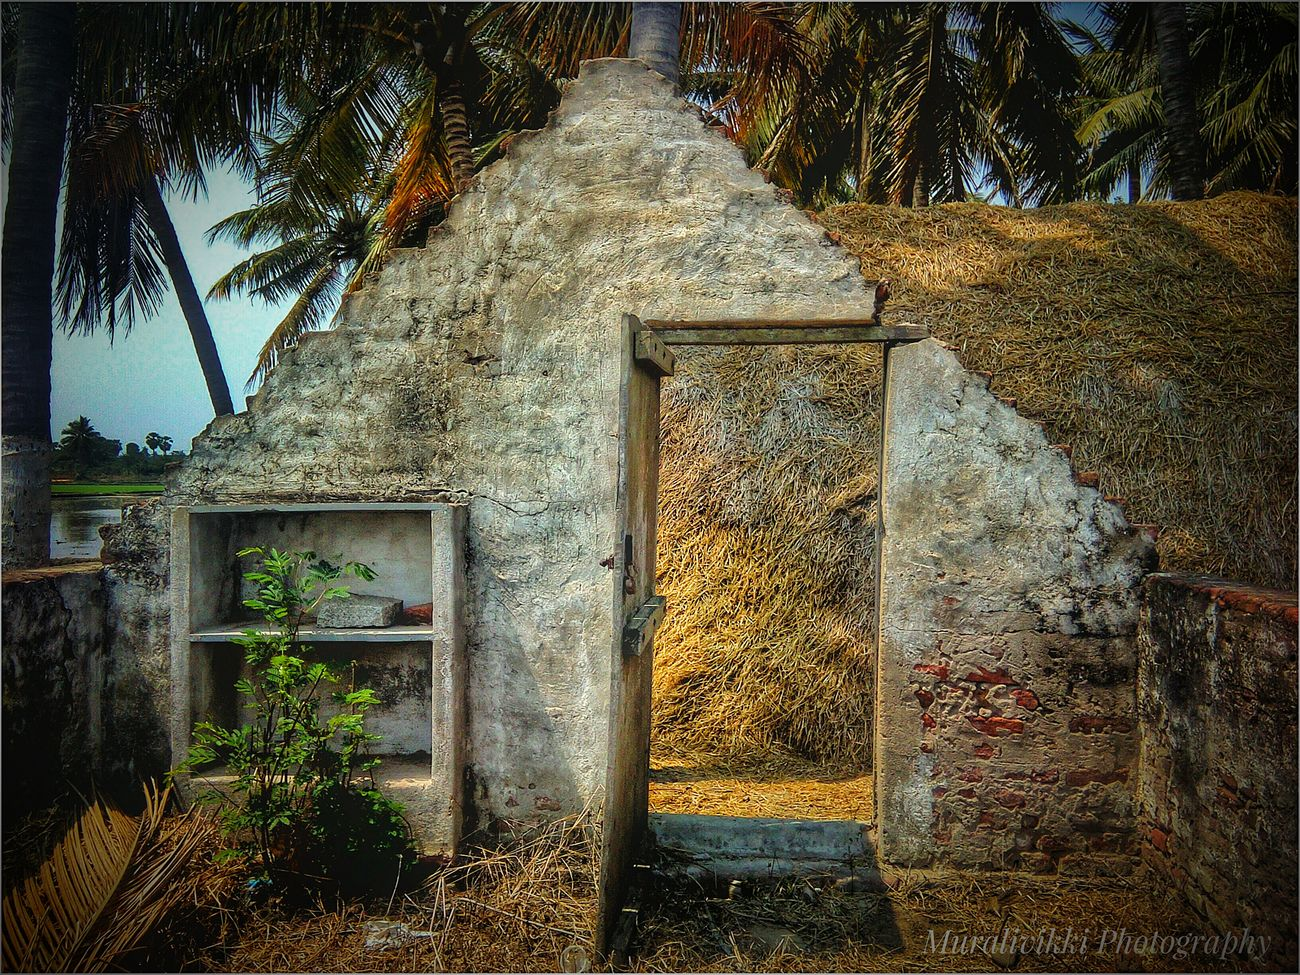 Old House Old But Awesome Old Architecture Architecture Built Structure Outdoors Building Exterior Home Sweet Home EyeEmGalley Summertime Eyeemphotography Bricks And Stones Bricks Arch Bricks In The Wall Oldpicture Villas Villagehouse Village Architecture Village Photography